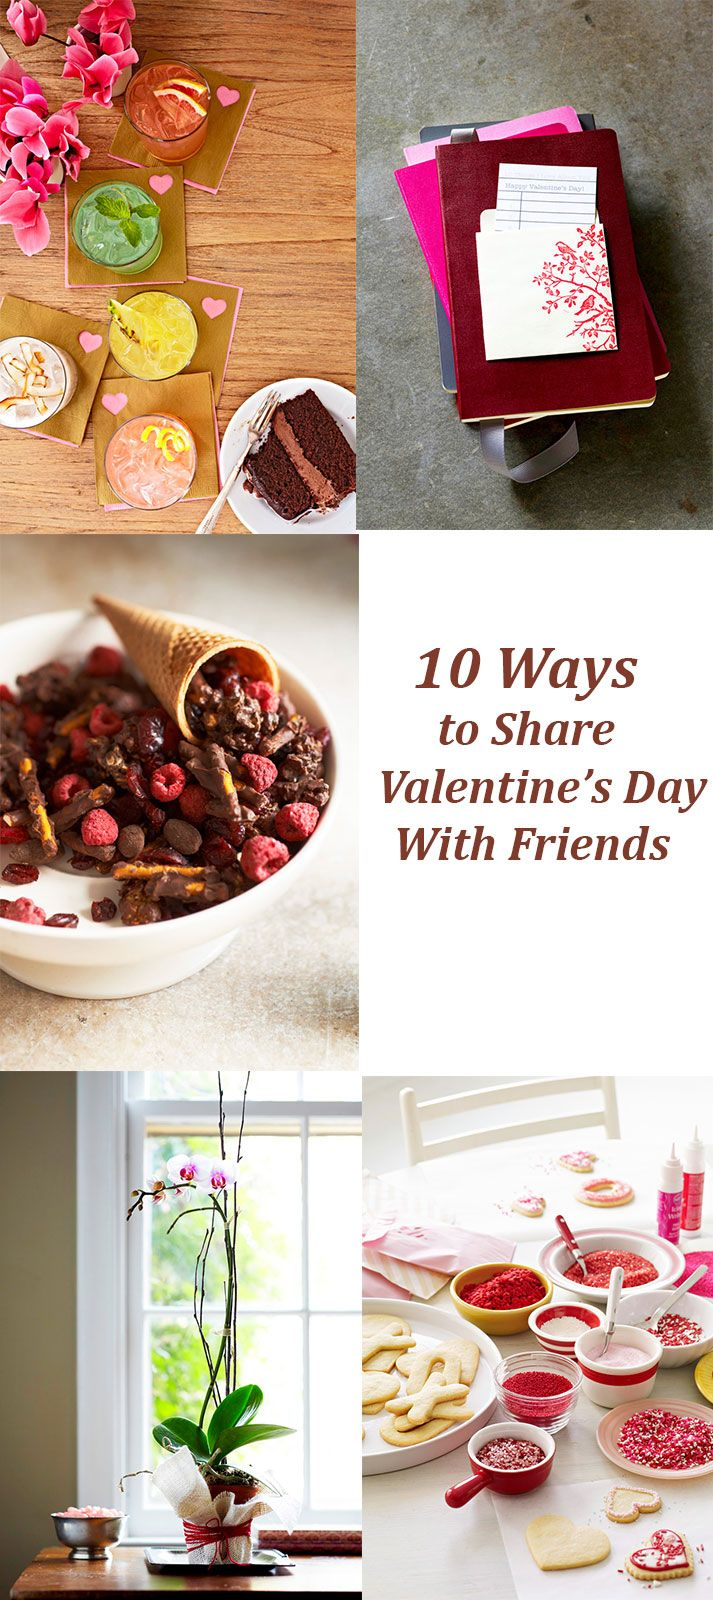 10 ways to show your friends you care on Valentine's Day! http://www.midwestliving.com/blog/life/10-ways-to-show-friends-you-care-on-valentines-day/